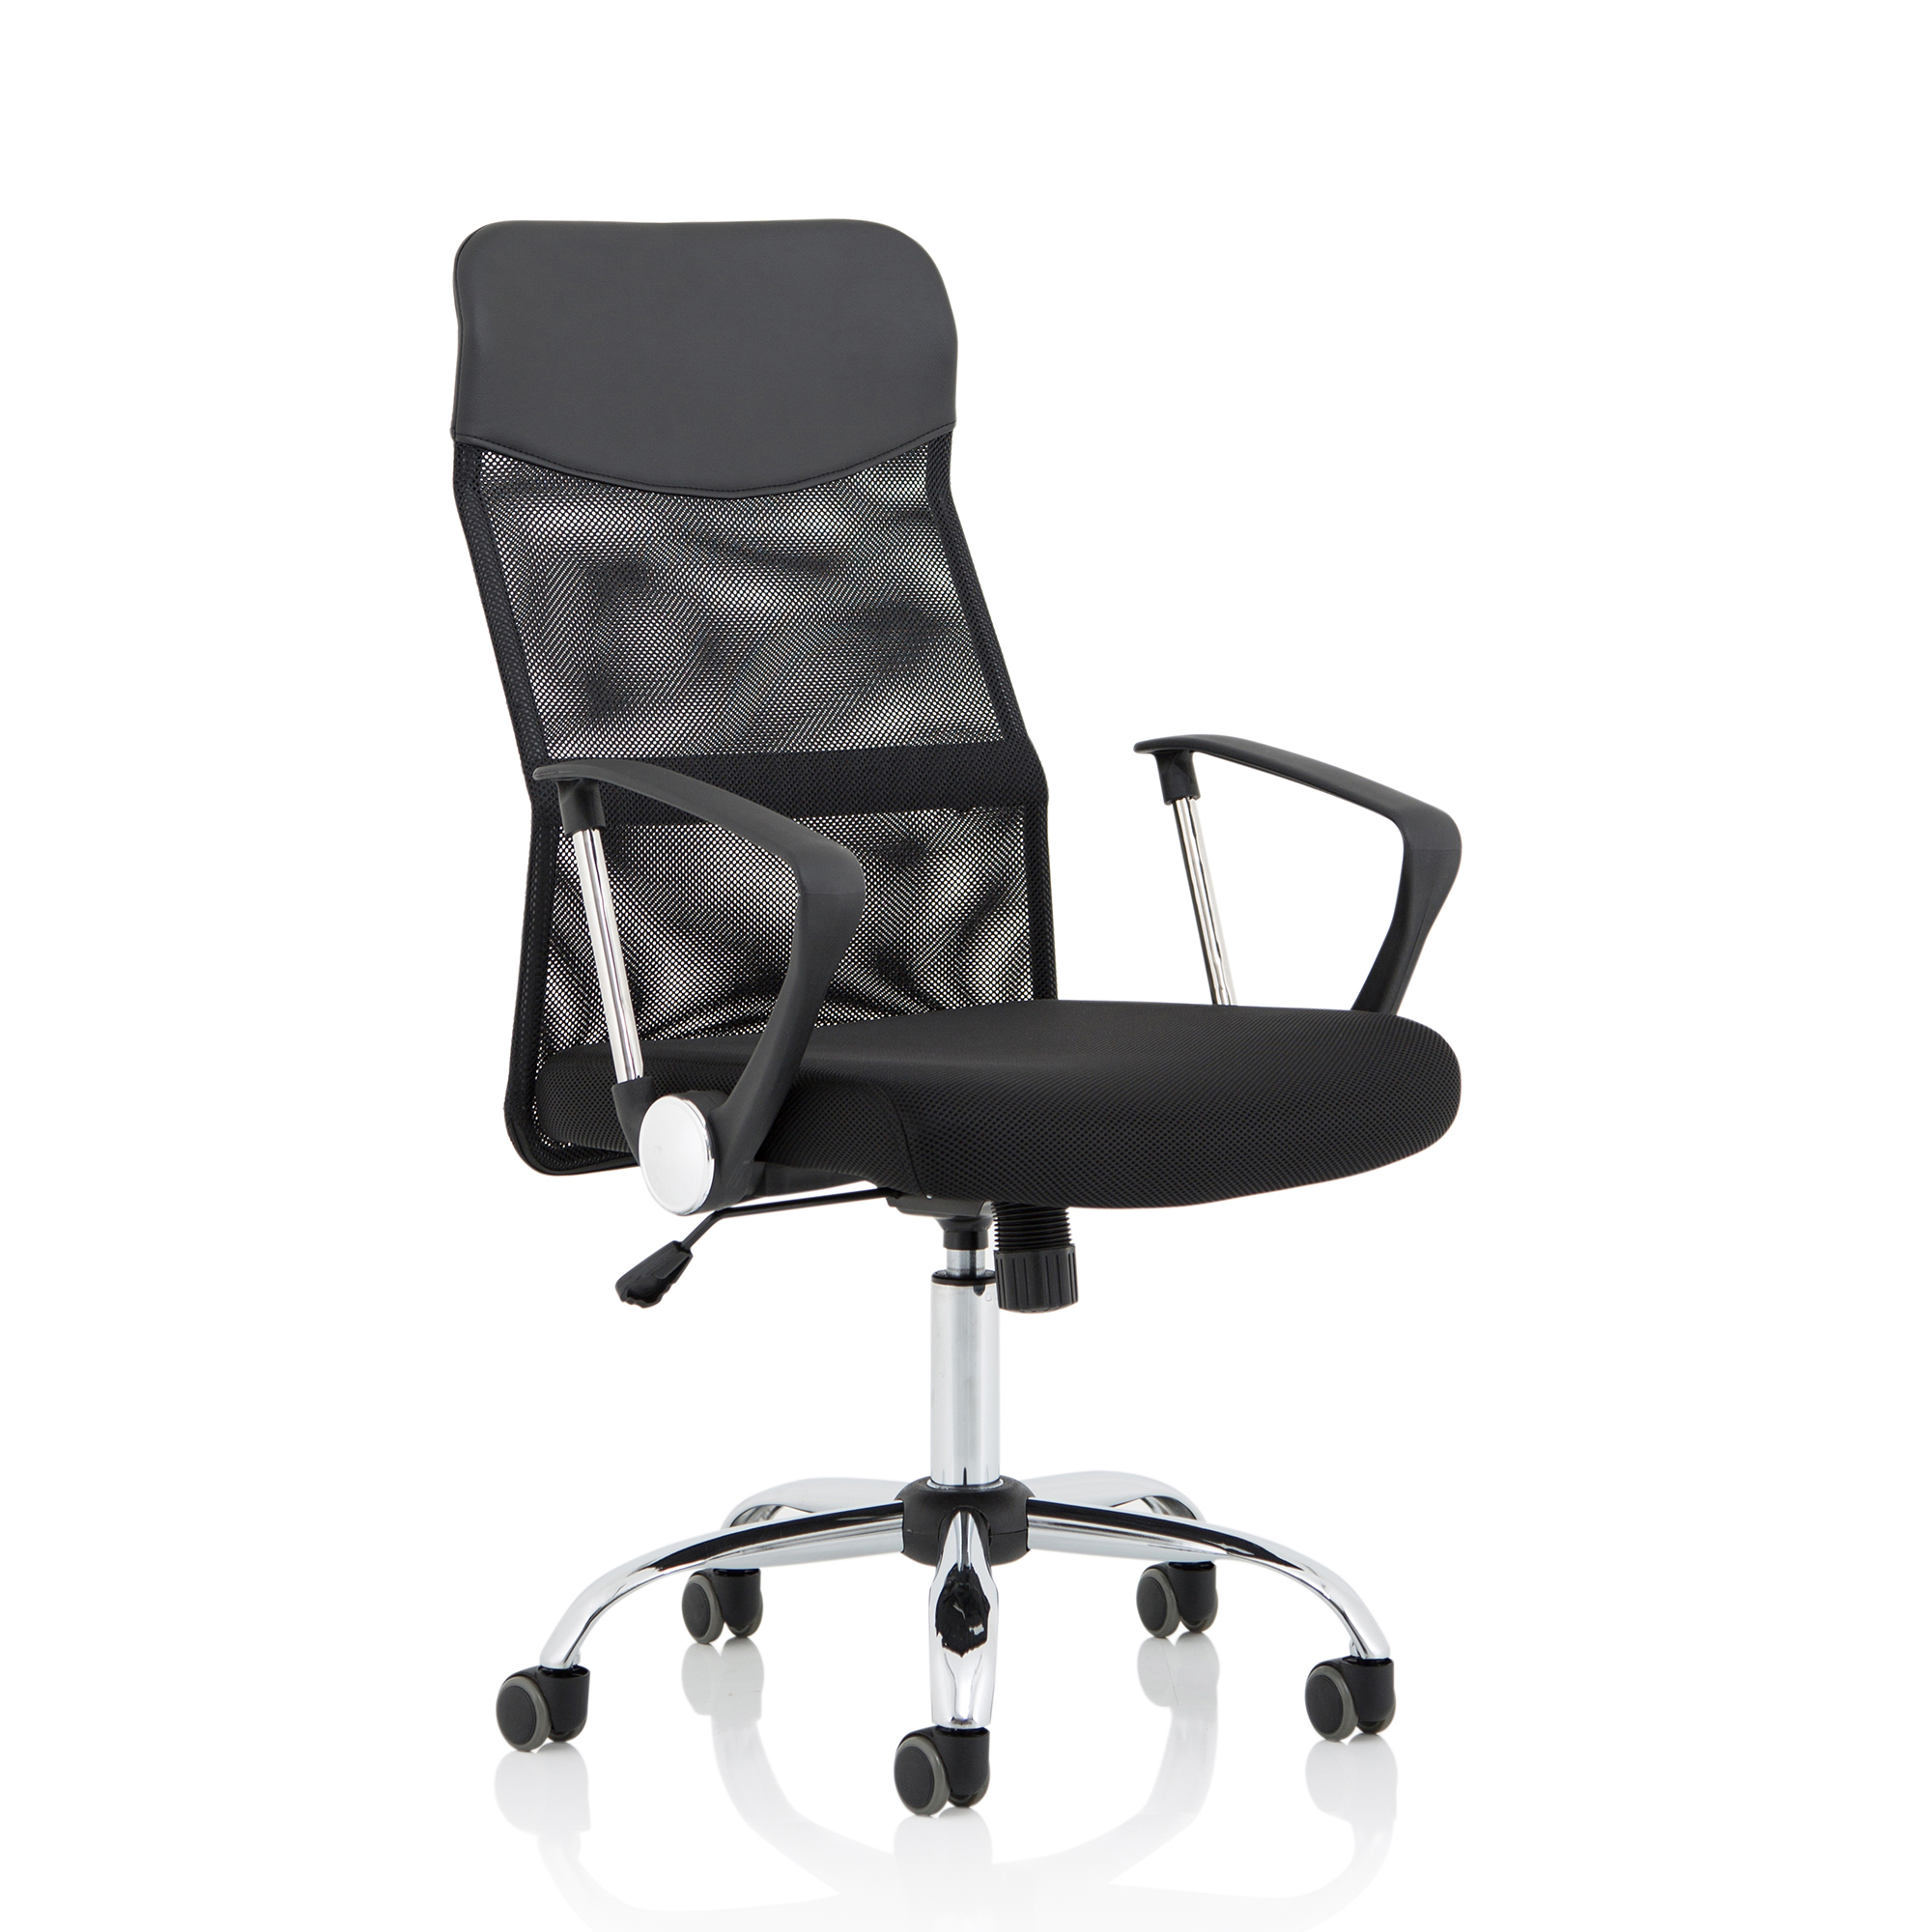 Executive seating Trexus Vegalite Executive Mesh Chair With Arms Ref EX000166